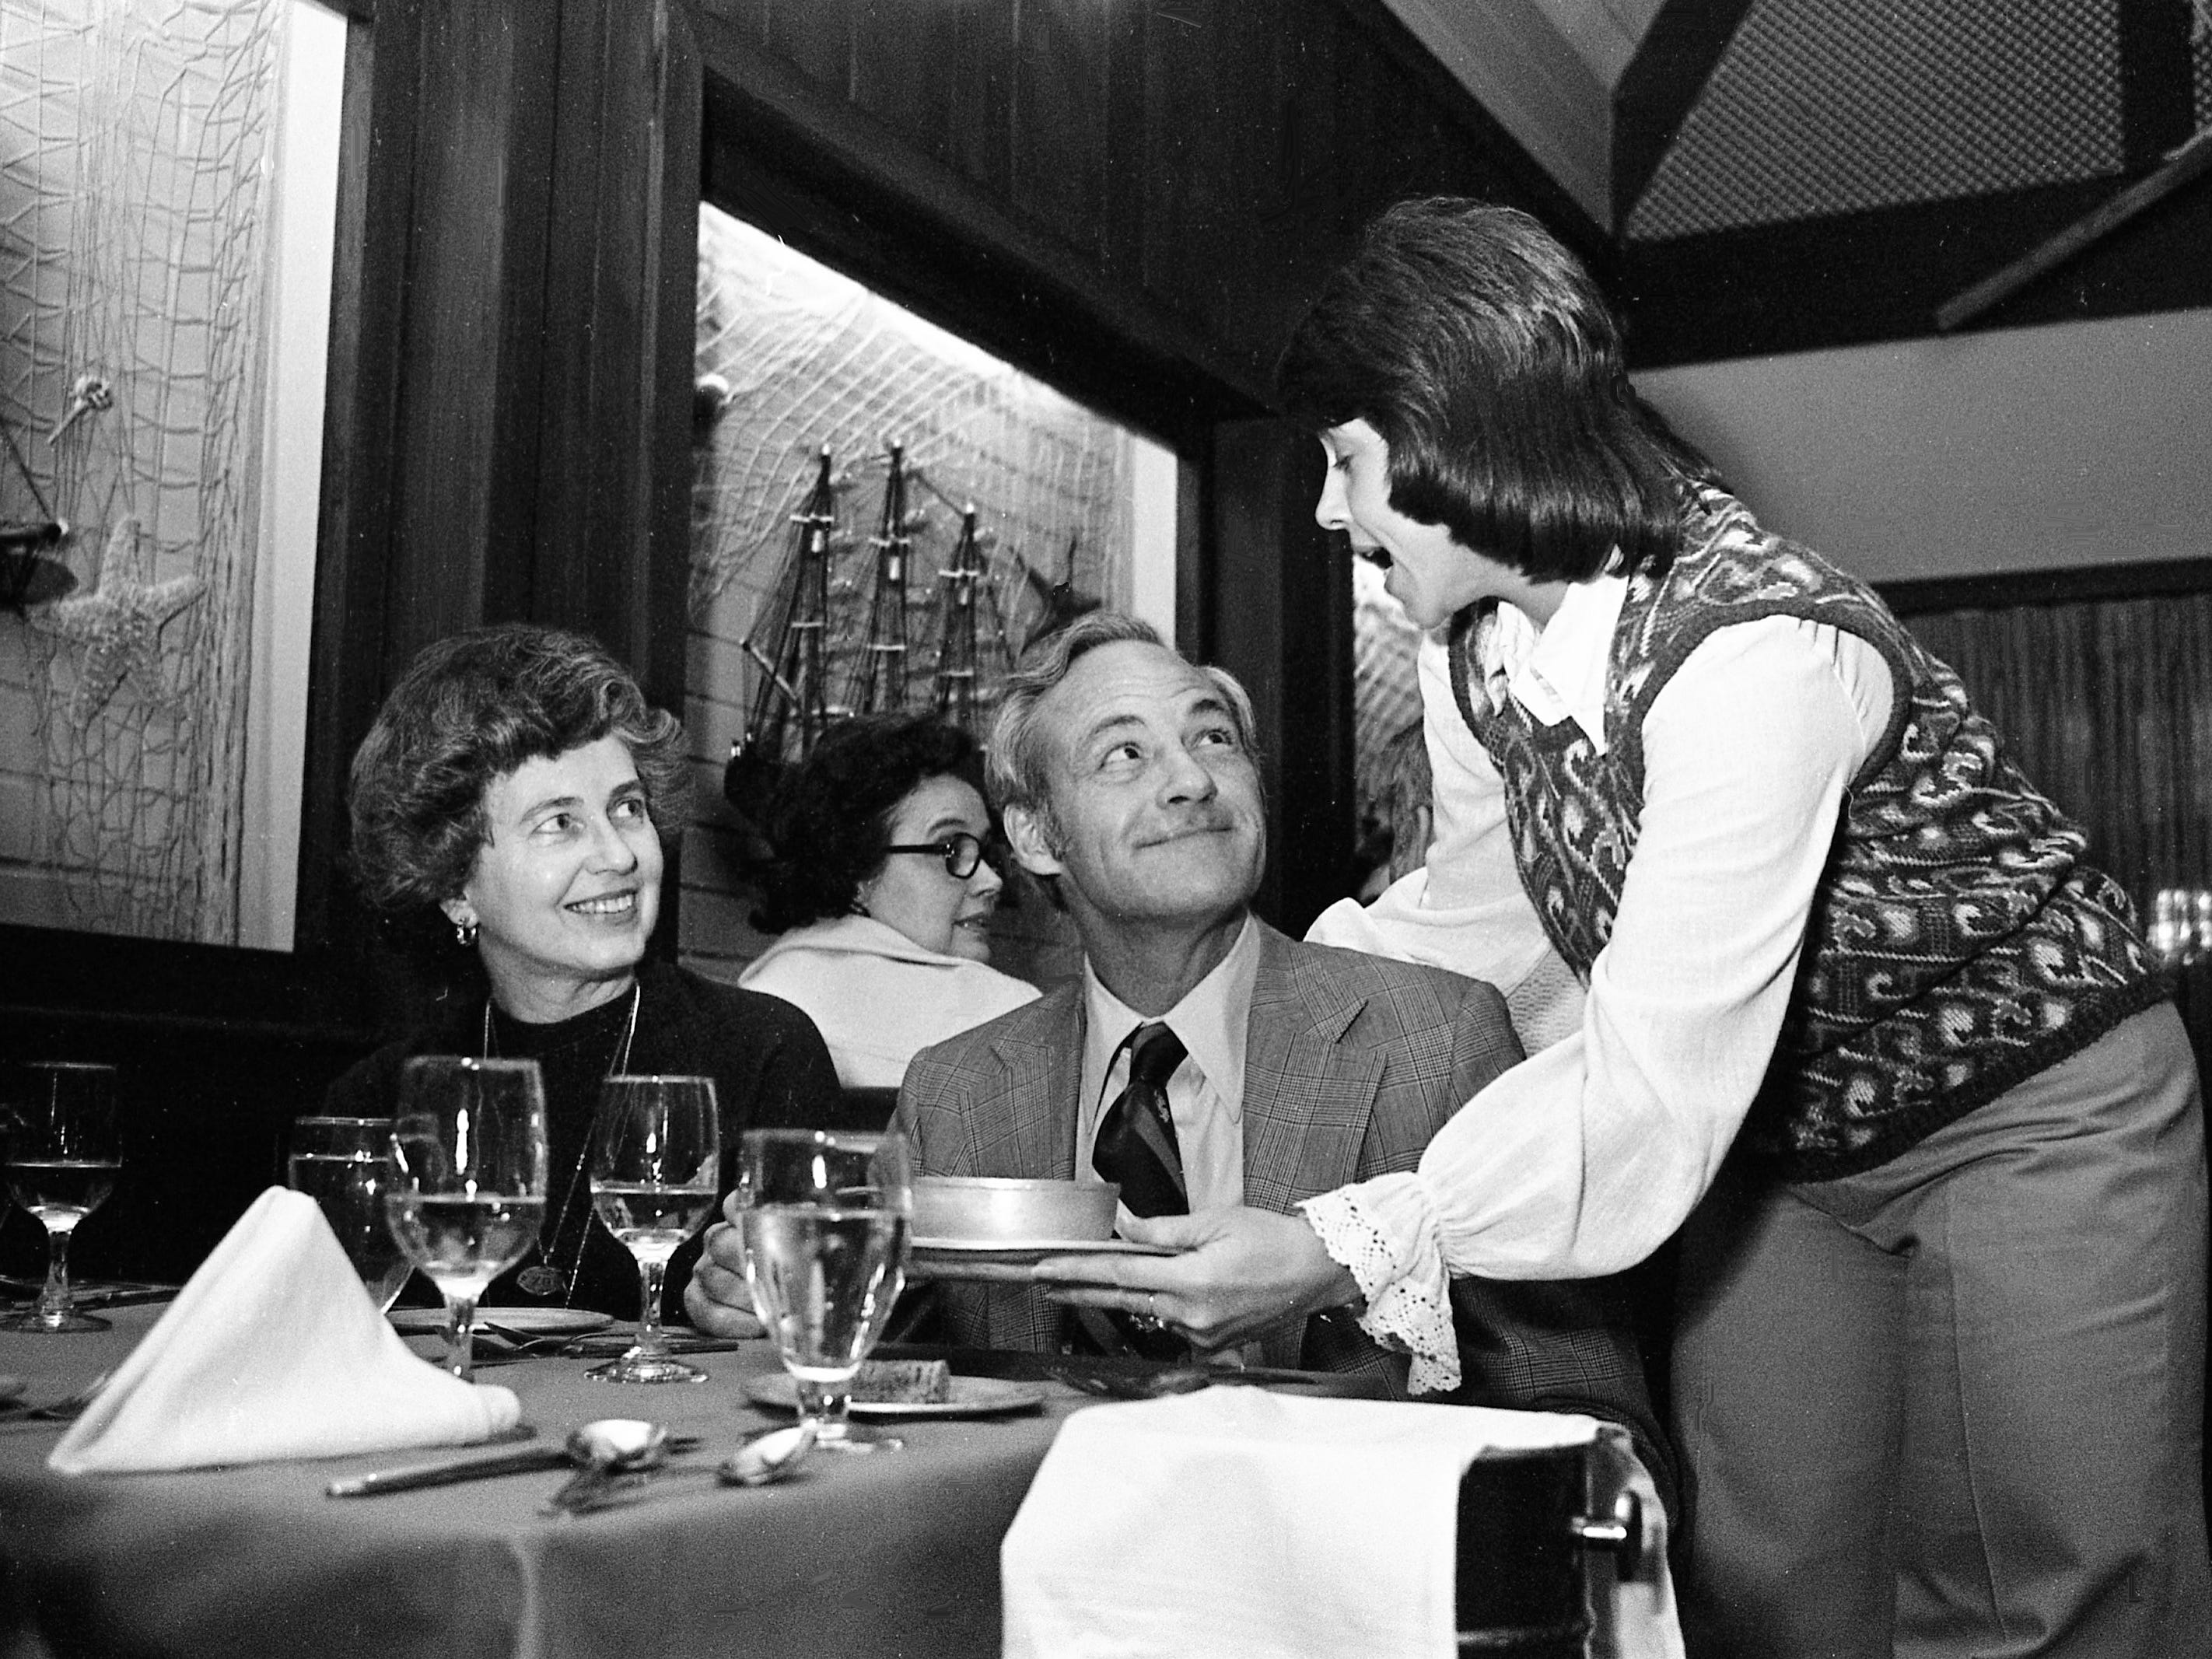 The chowder is served with a song at The Fisherman restaurant on West End Feb. 7, 1975. Waitress and co-manager Donna Ragan serves Mrs. and Mr. Mike Grace at the unique seafood establishment.